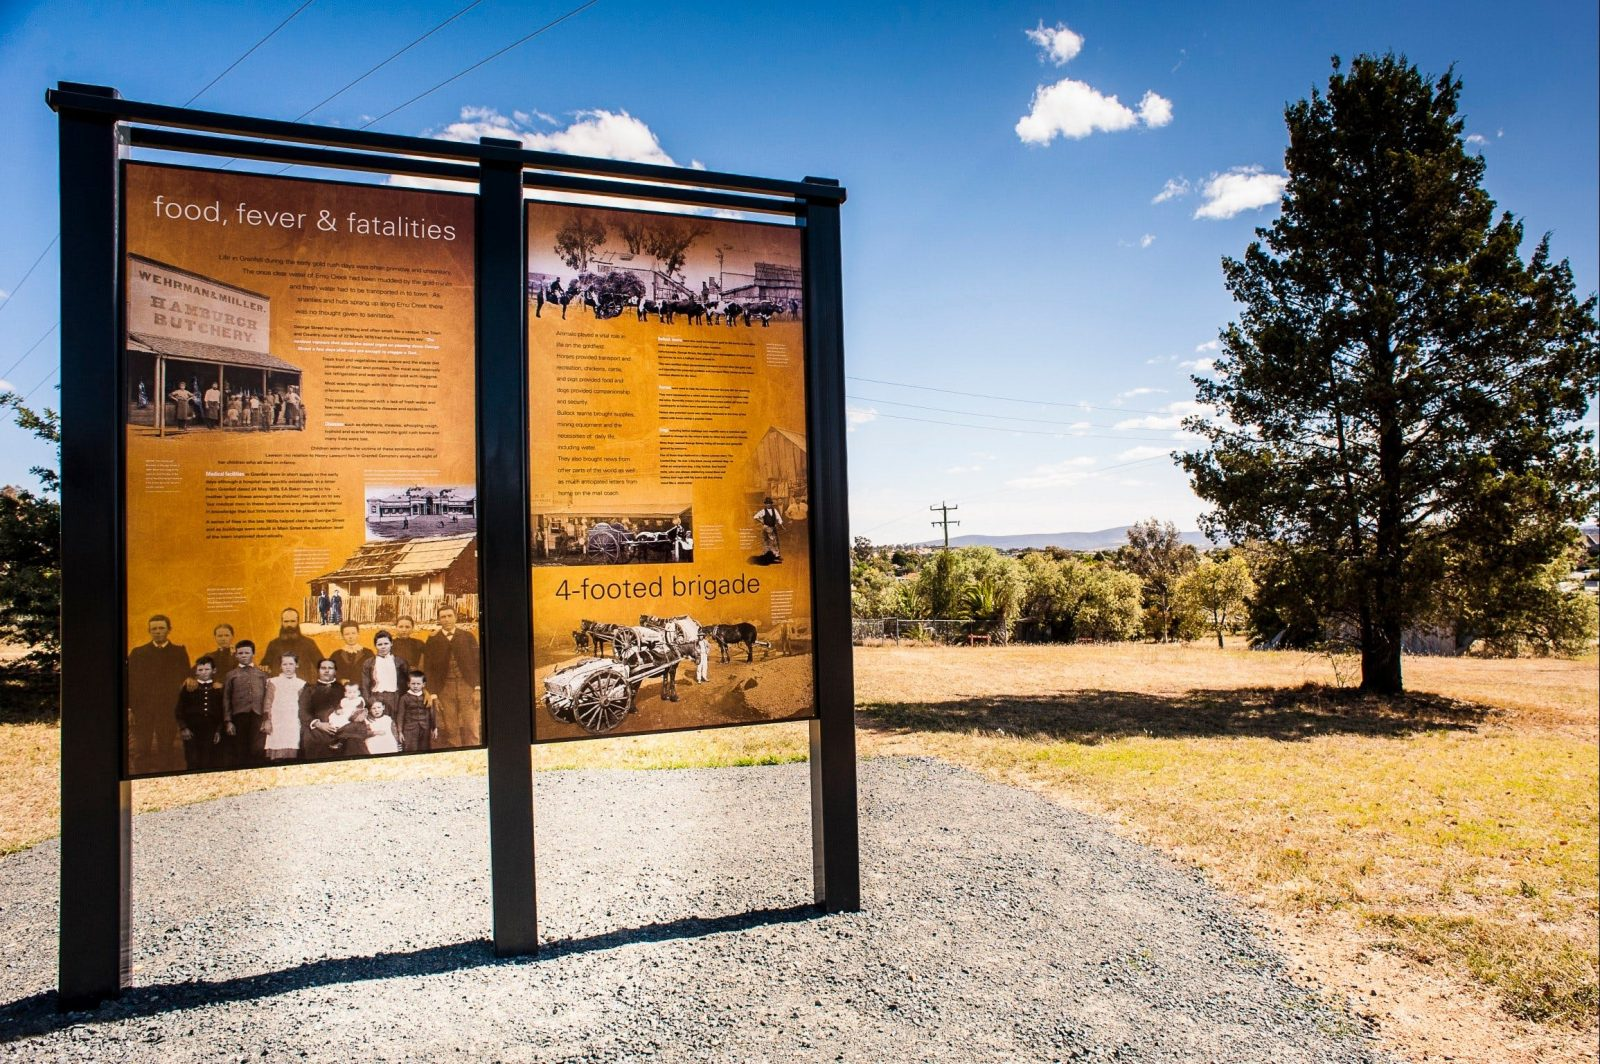 Interpretive signage at O'Brien's Hill Grenfell